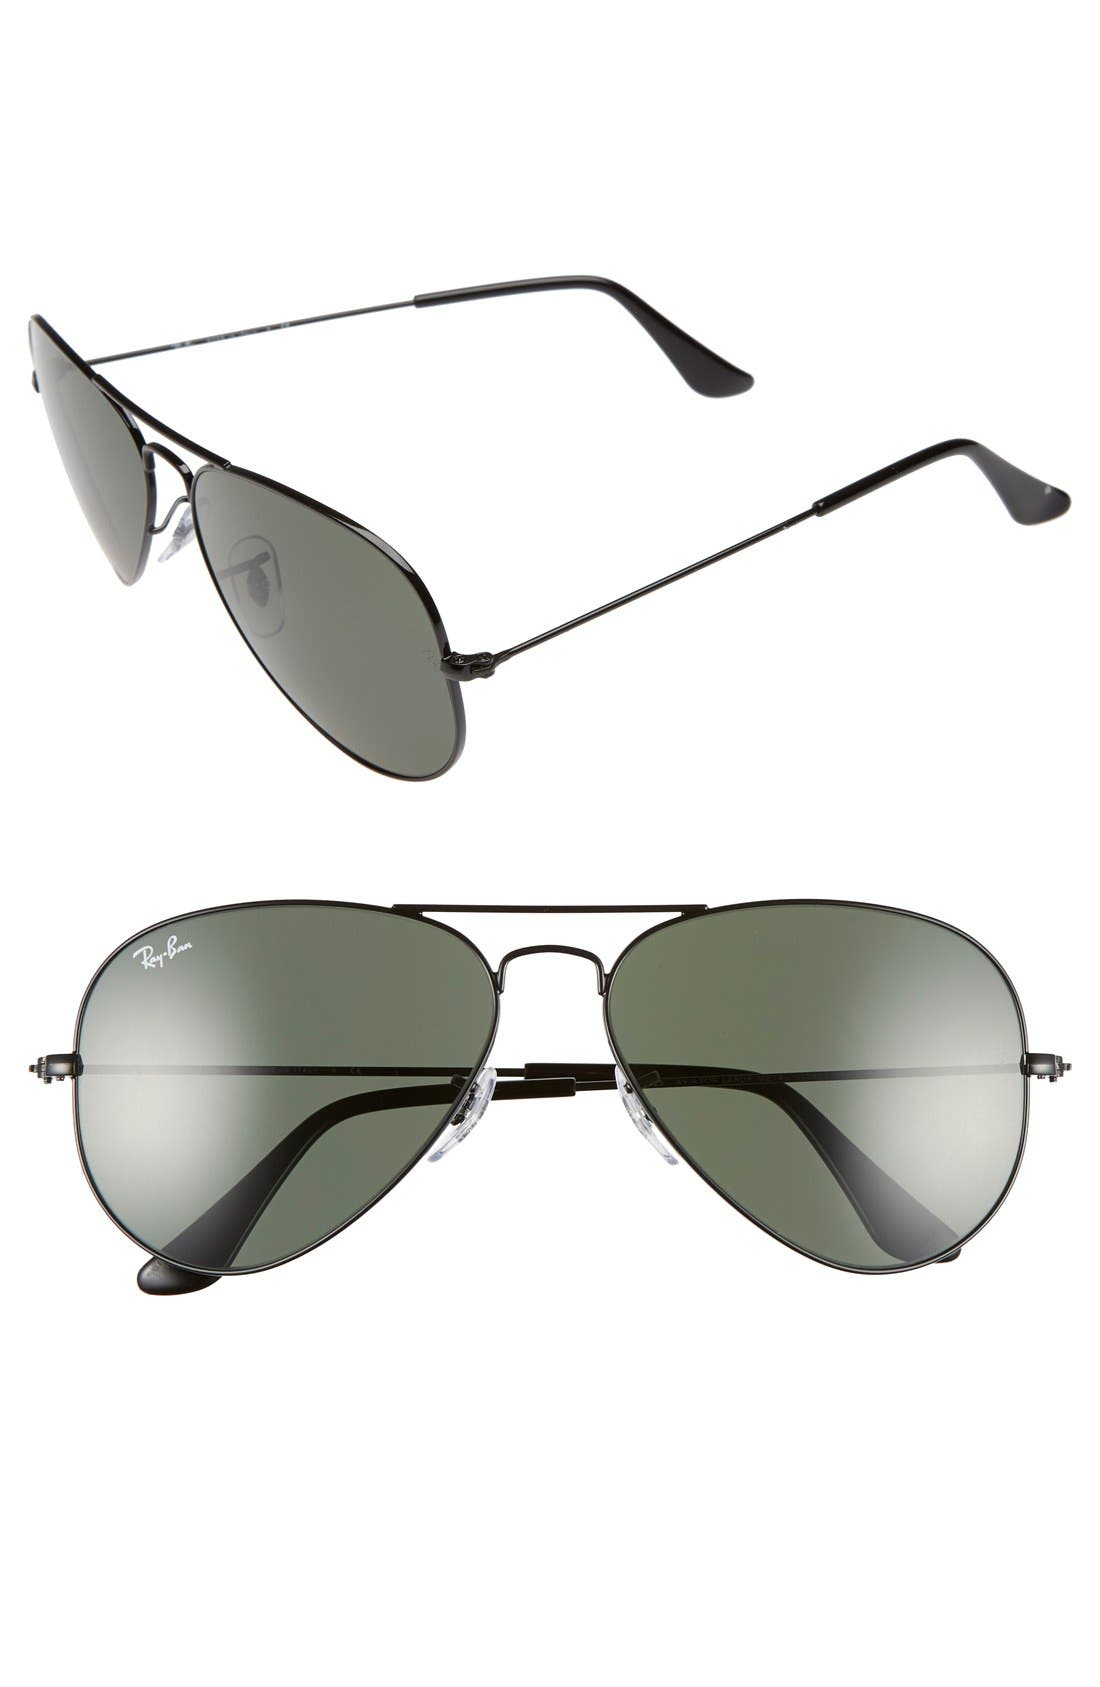 Standard Original 58mm Aviator Sunglasses,                         Main,                         color, Black